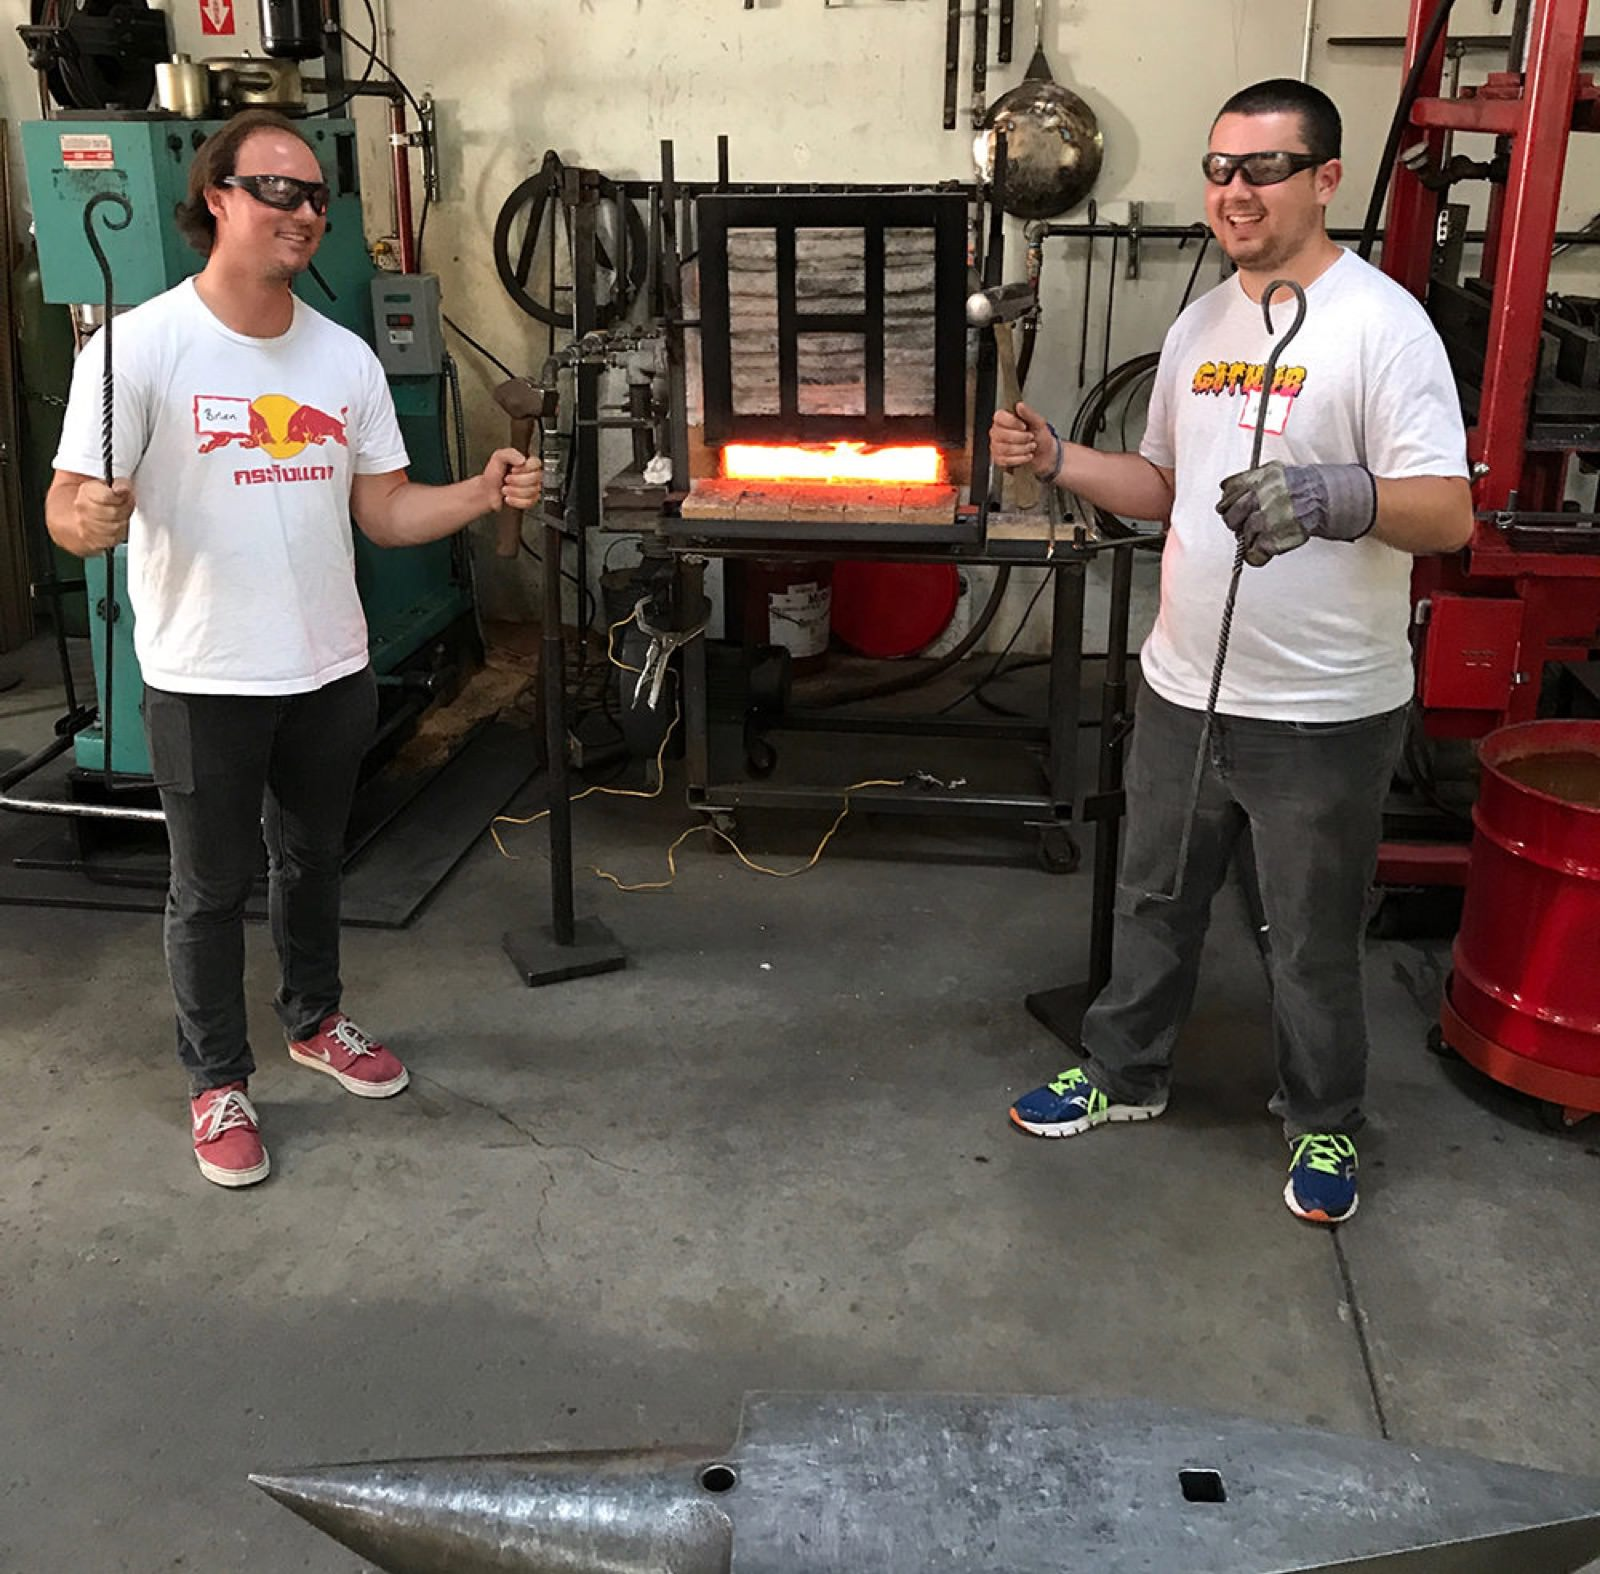 Brian (another security intern) and I with our firepokers